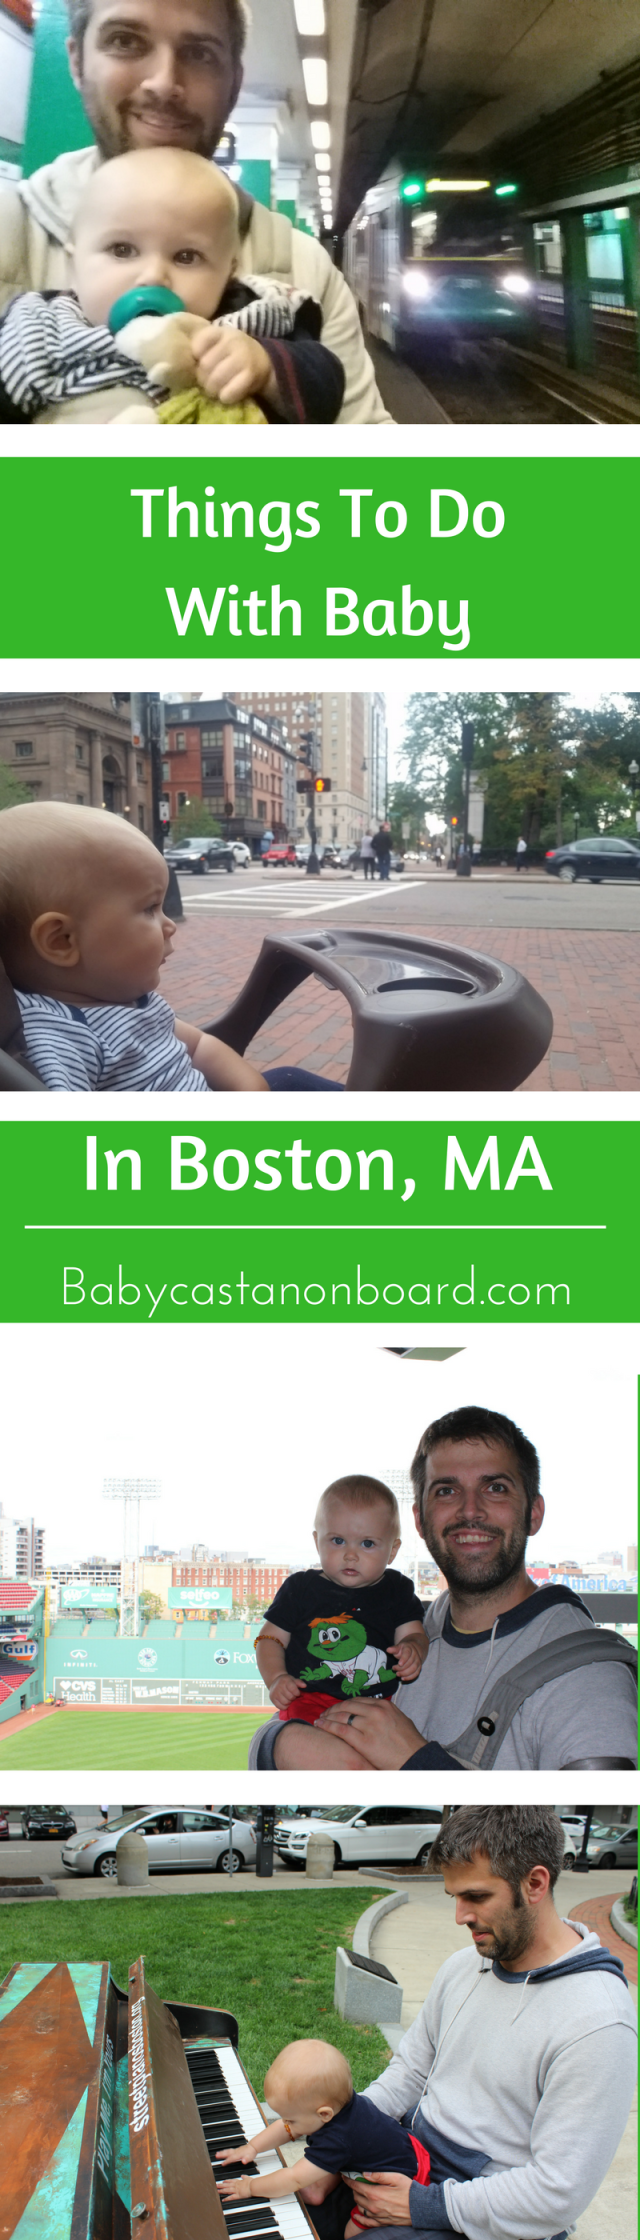 We had four days in Boston over the summer and found there is a lot to do with baby! Here are all the things to do with a baby in Boston.